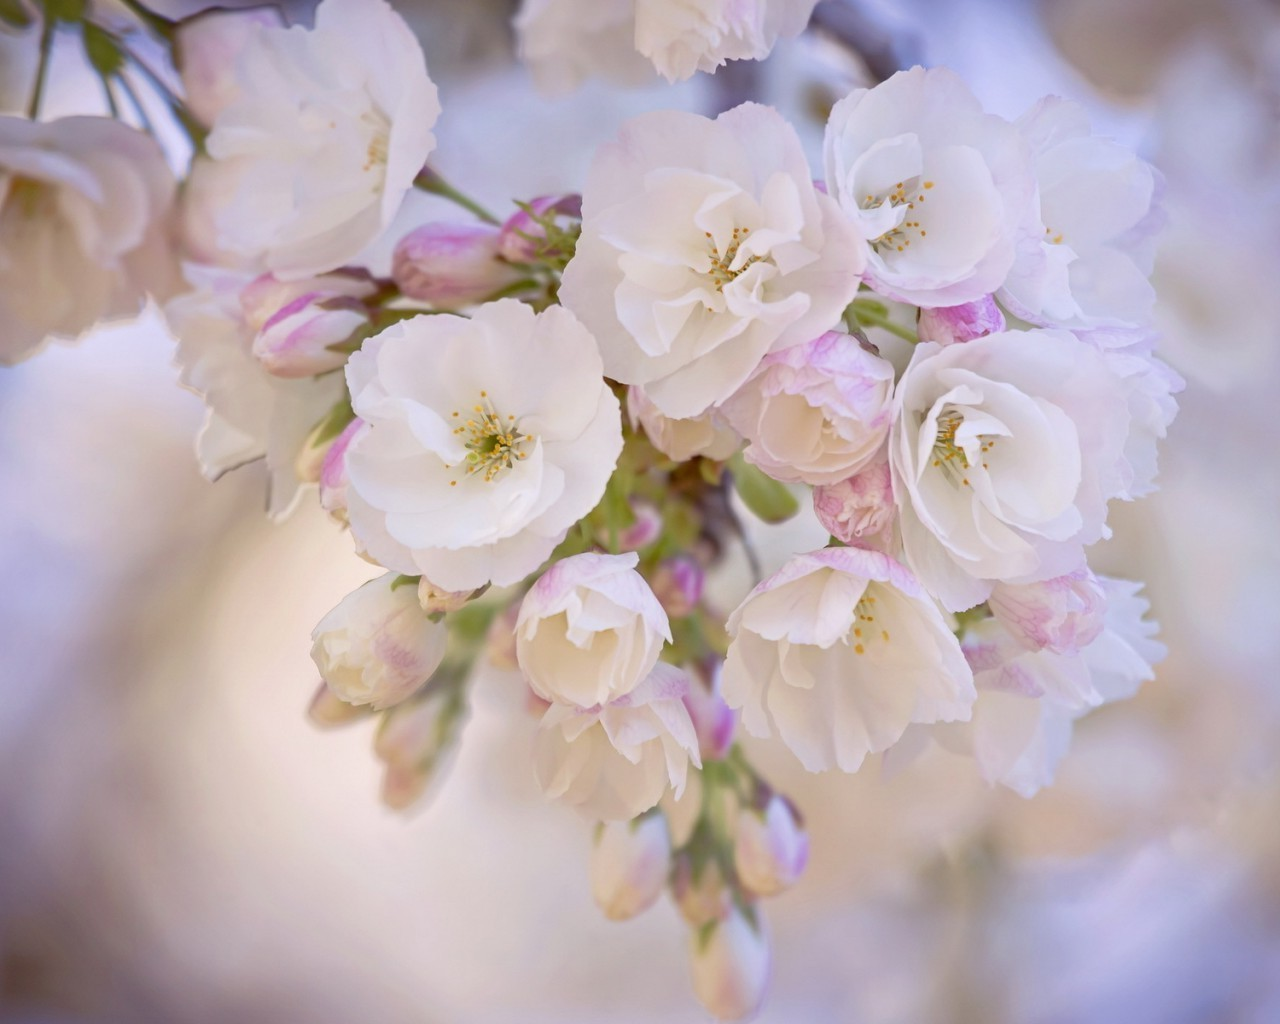 flowers flower nature flora cherry branch leaf petal garden floral blooming tree bud delicate summer growth apple bright easter color